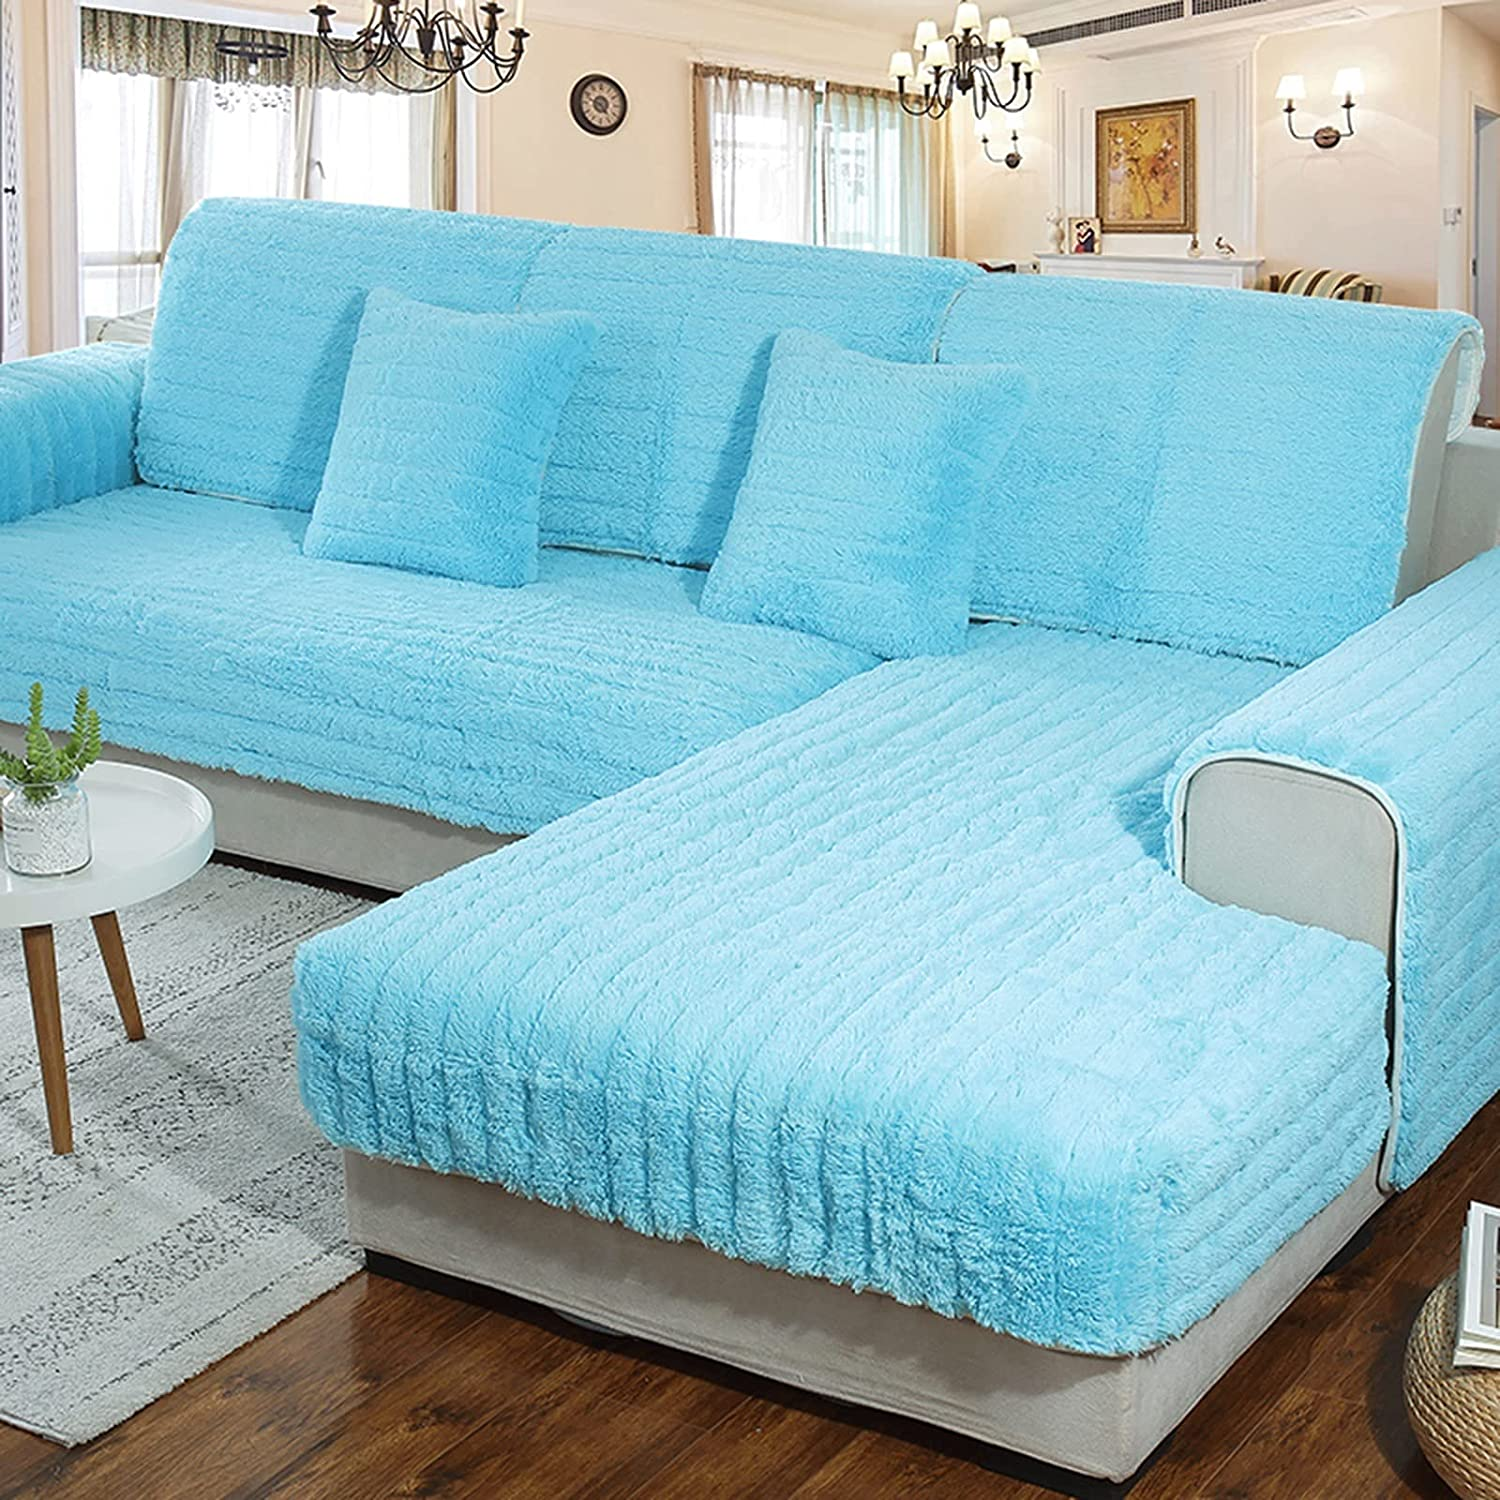 ZYZCJT Plush Couch Cover1 quality assurance Soft Super beauty product restock quality top! 1 Sold by Sofa Cover